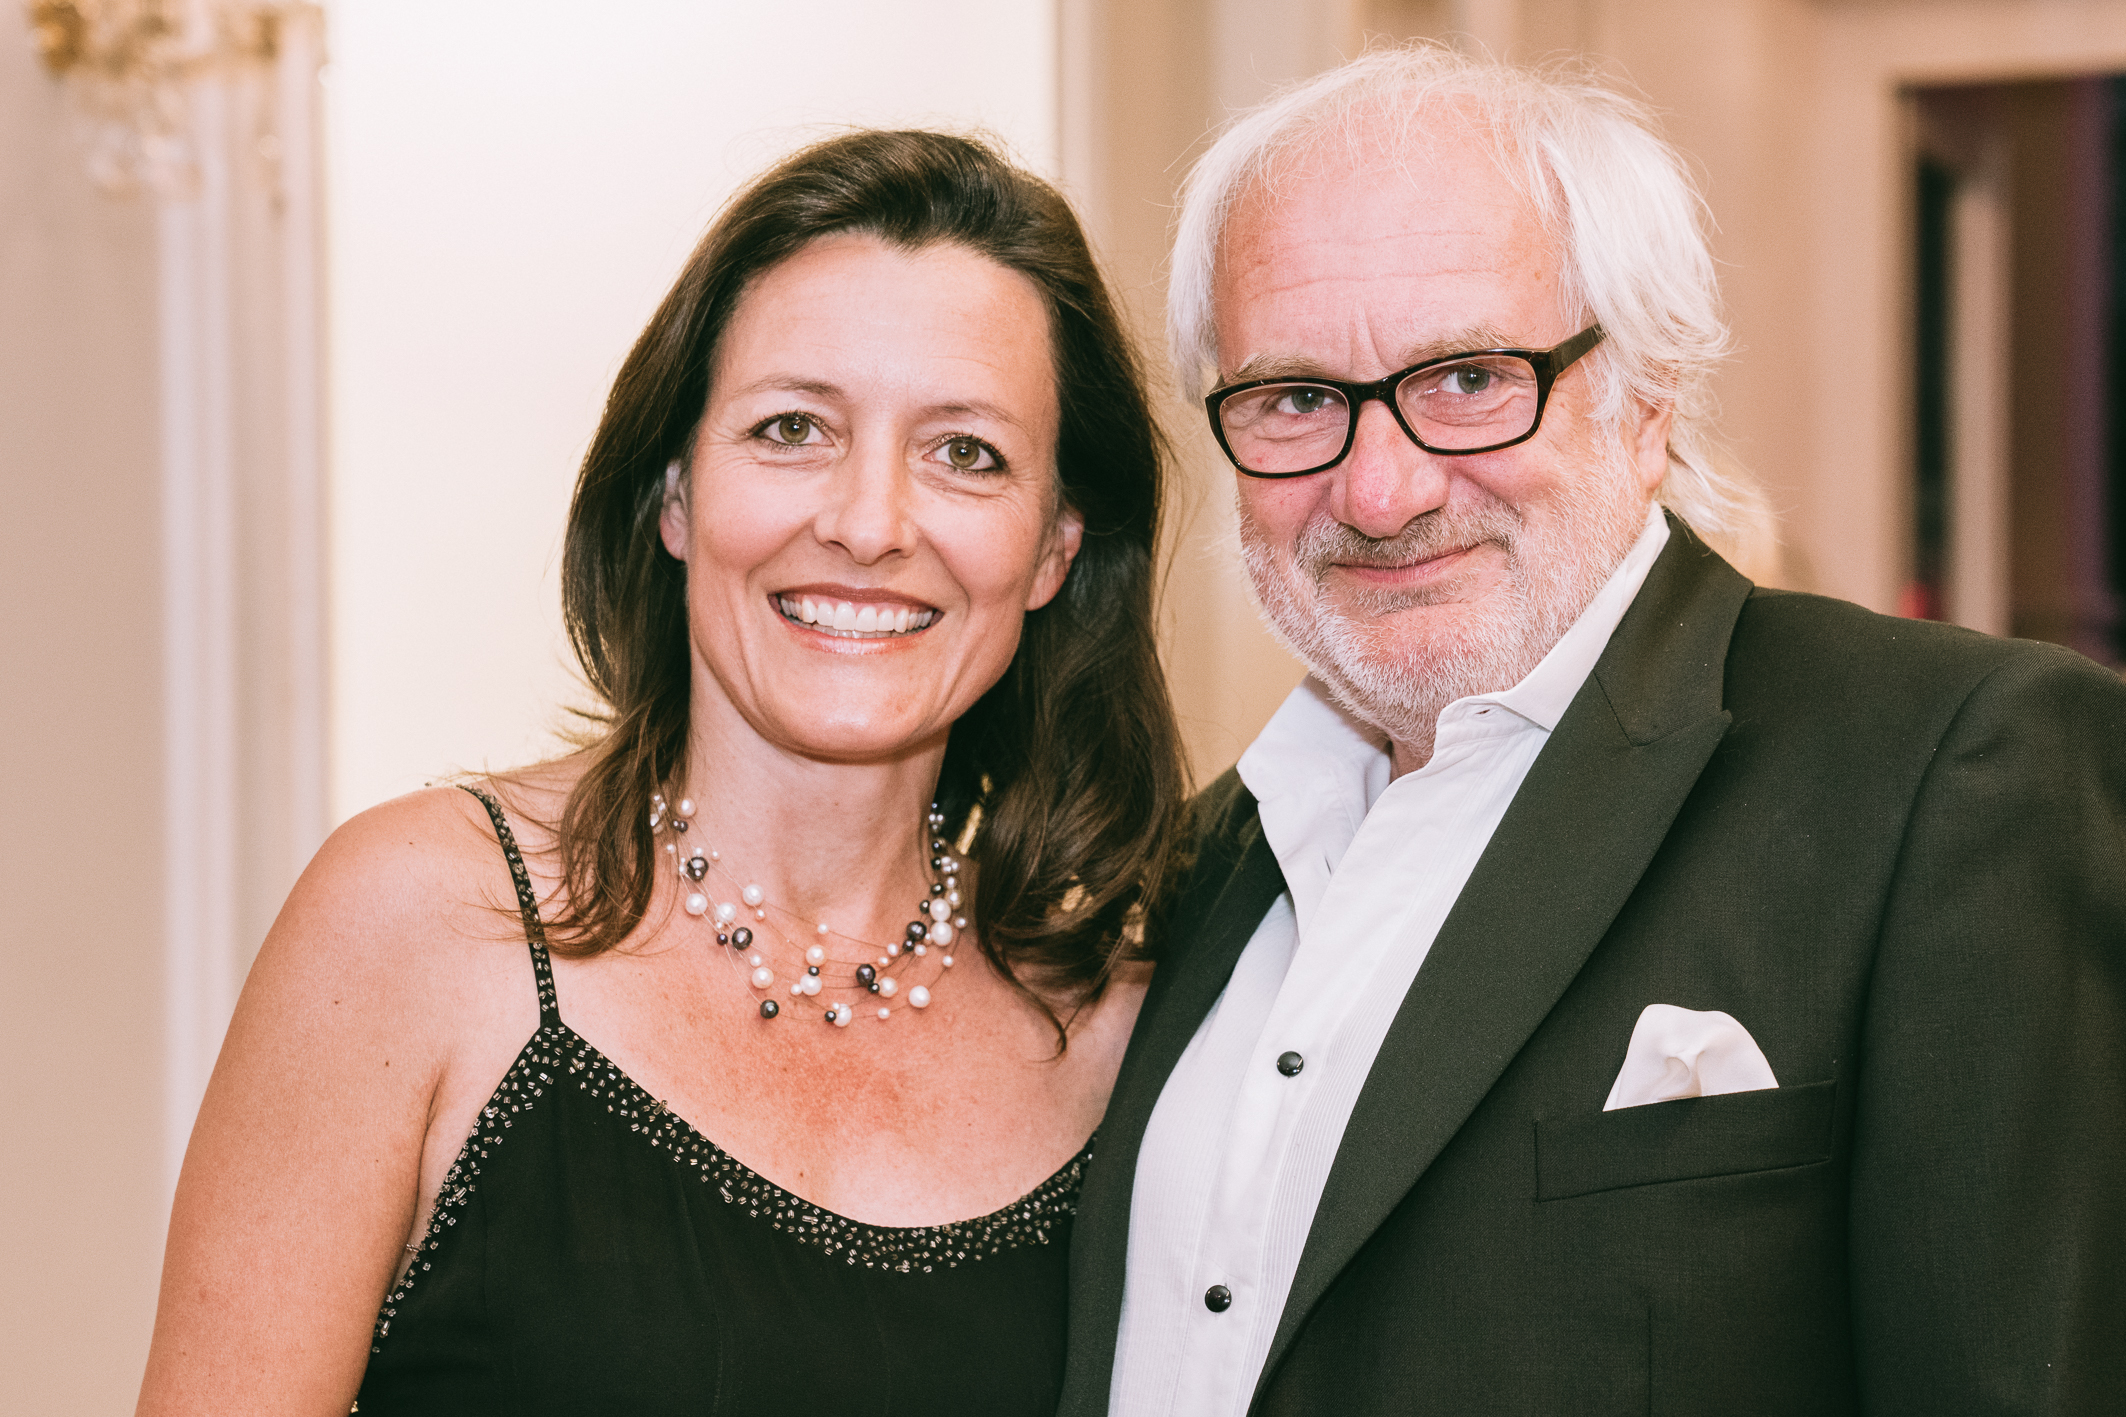 Michael Schottenberg with his wife